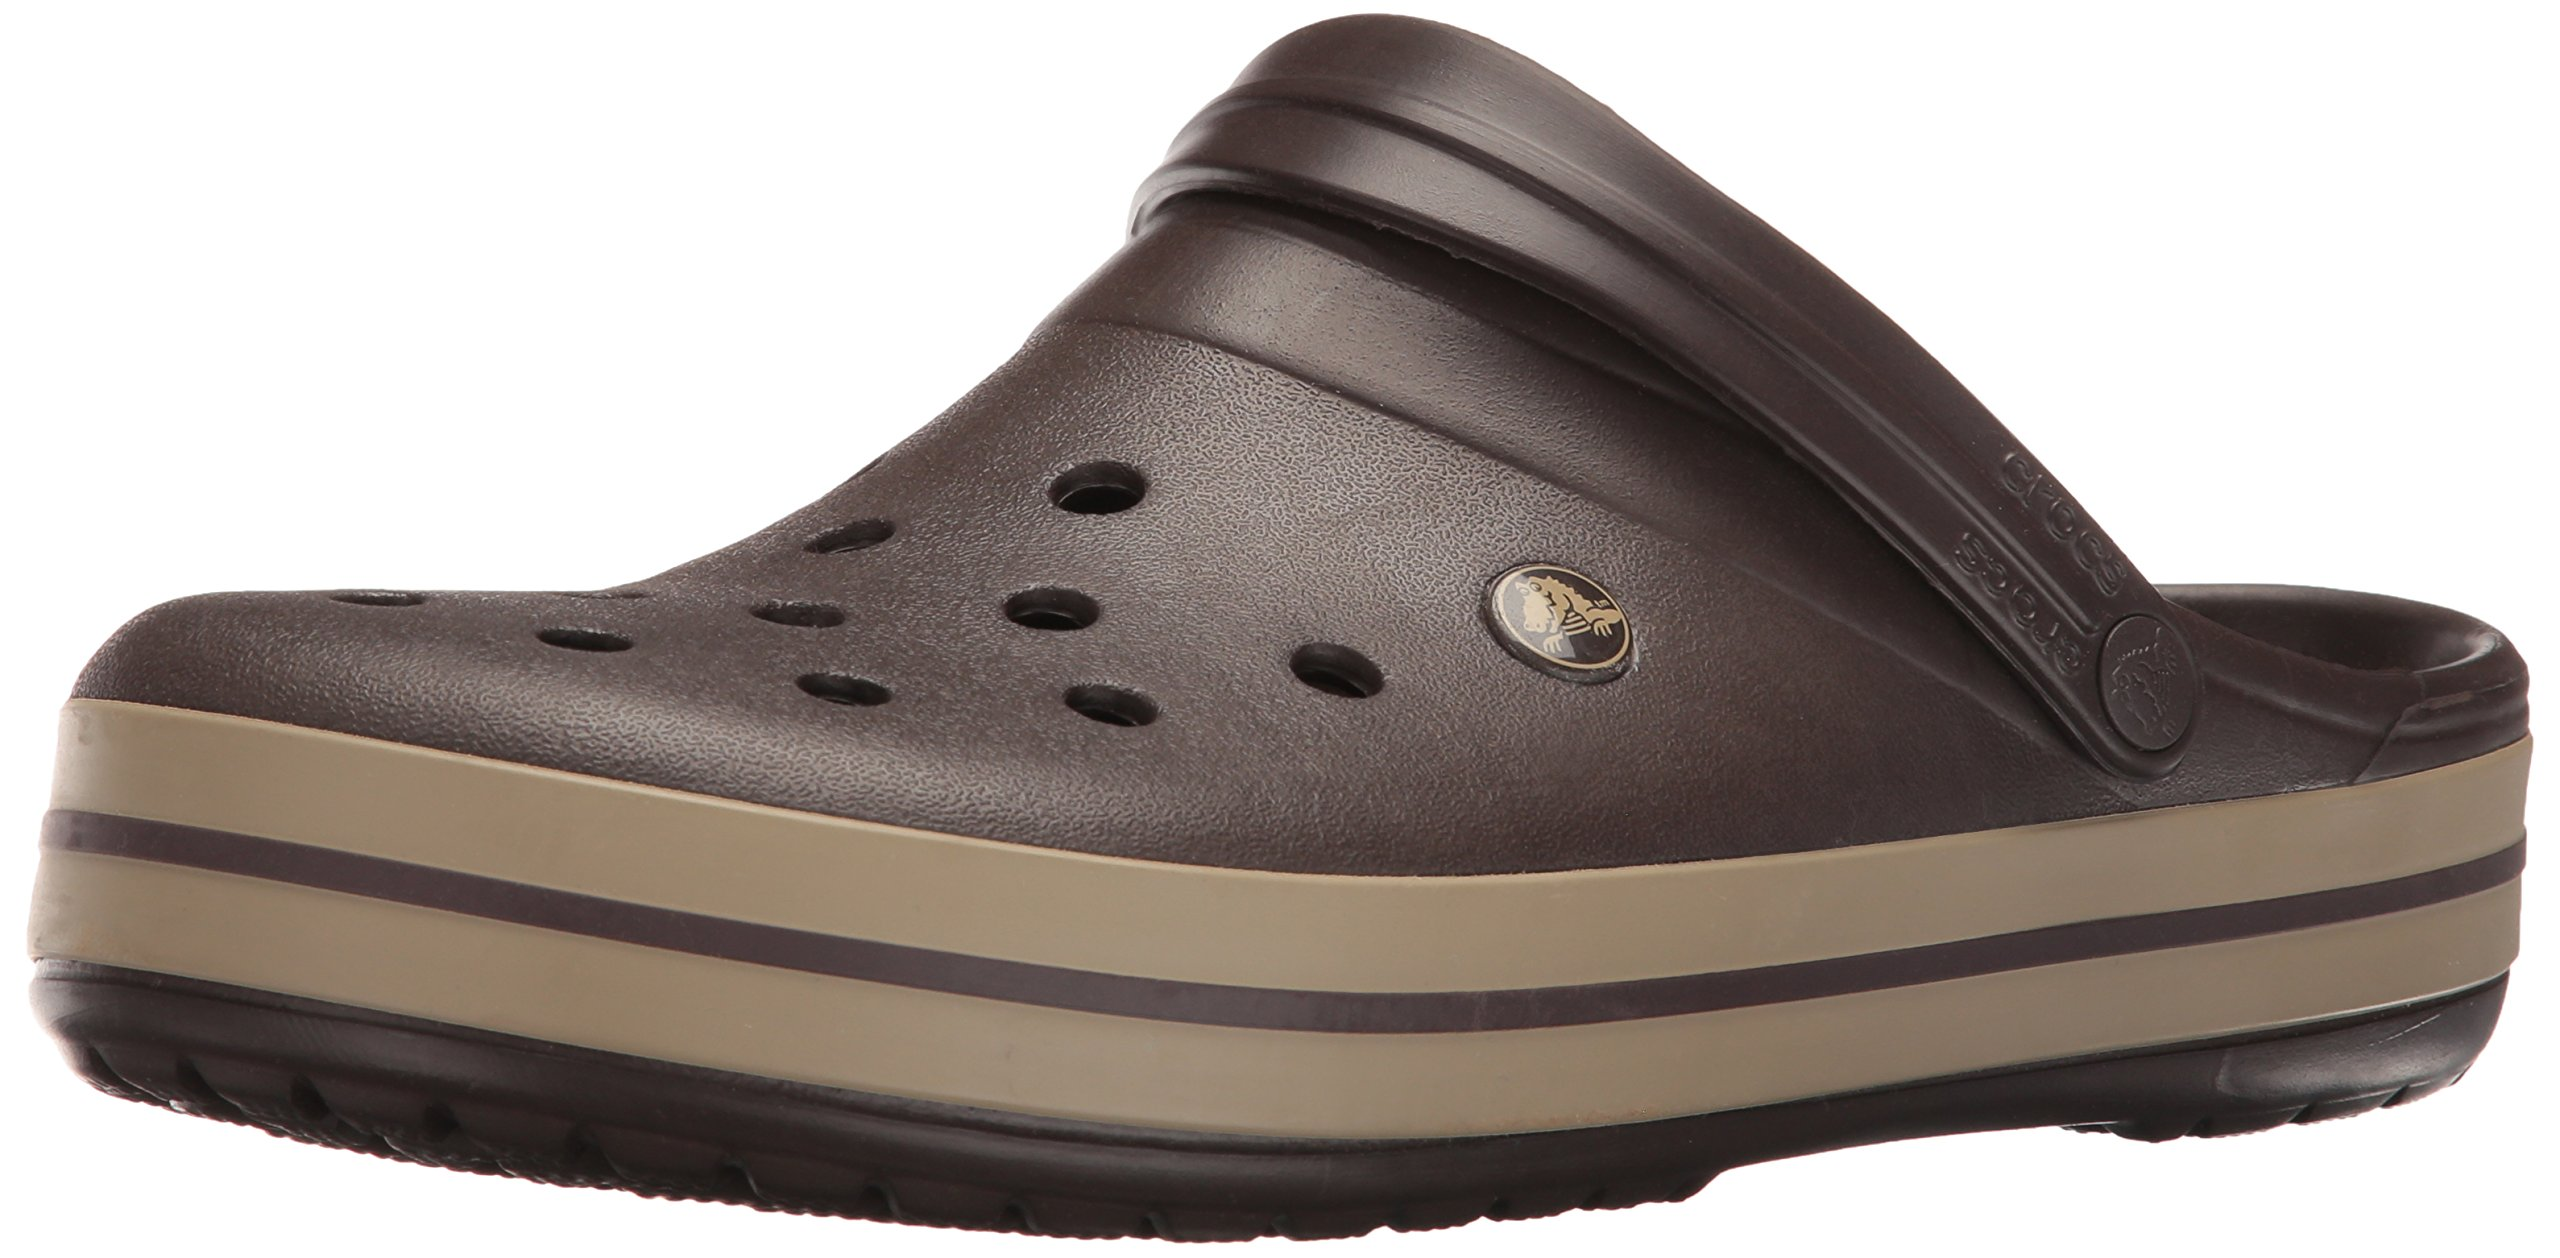 c5a10bb77b3677 Galleon - Crocs Unisex Crocband Clog